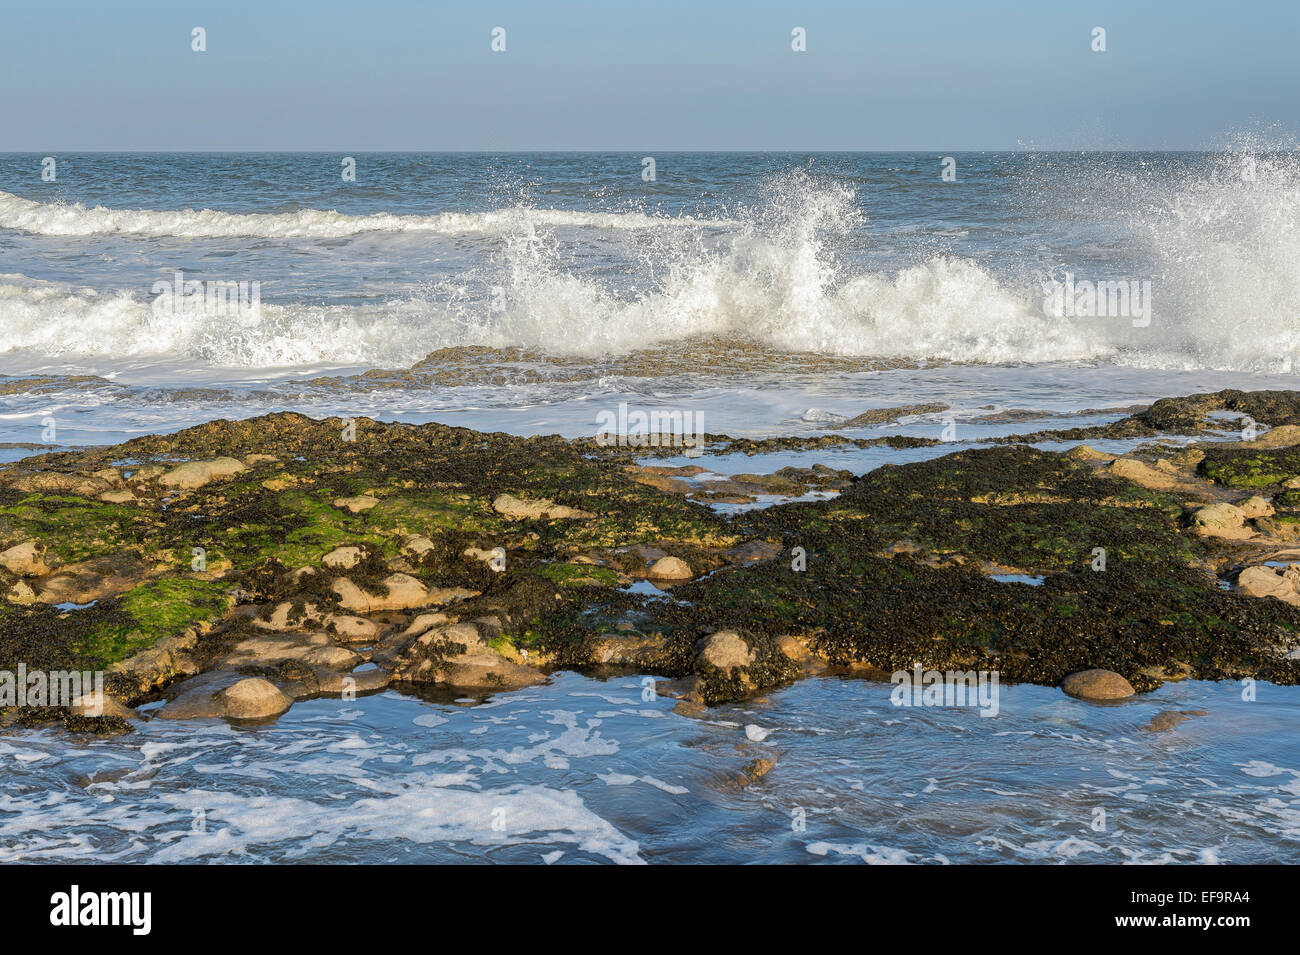 Waves crash on to a rocky beach at Filey, Northern England. Horizontal format with copy space. - Stock Image